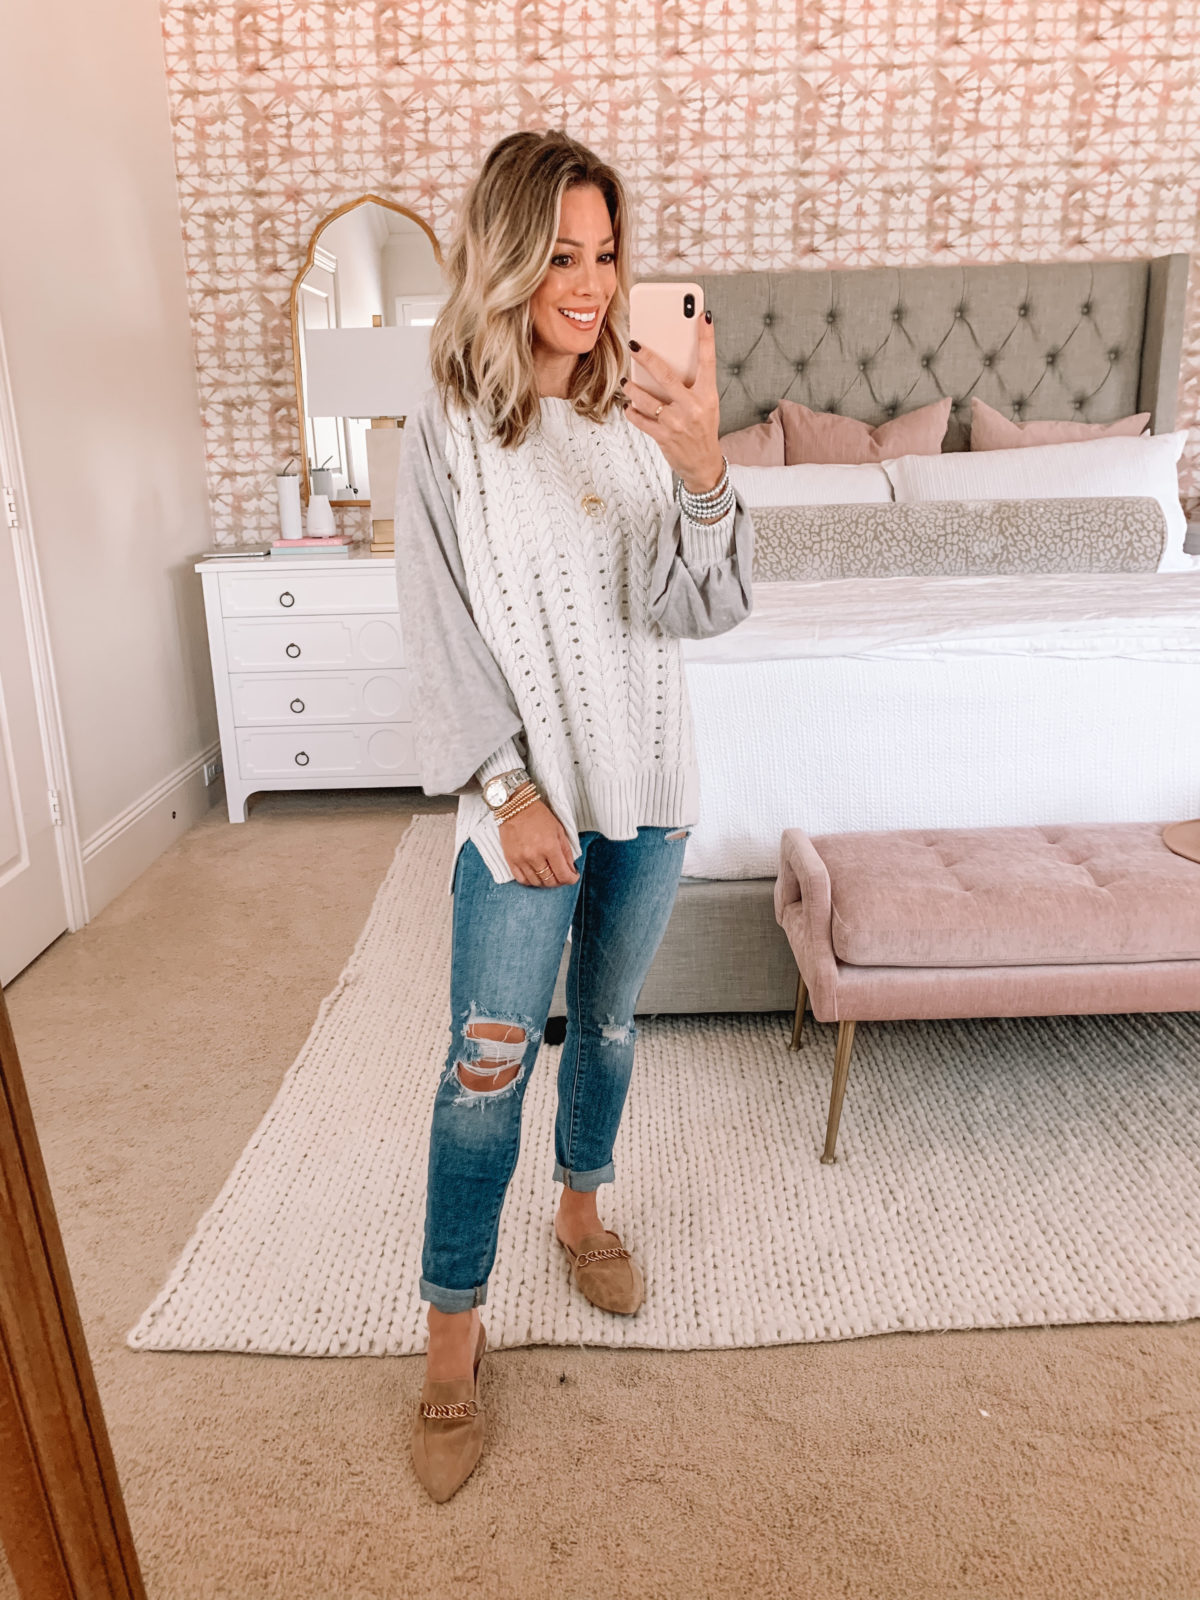 Red Dress Fashion Finds, Cable Knit Sweater, Jeans, Mules